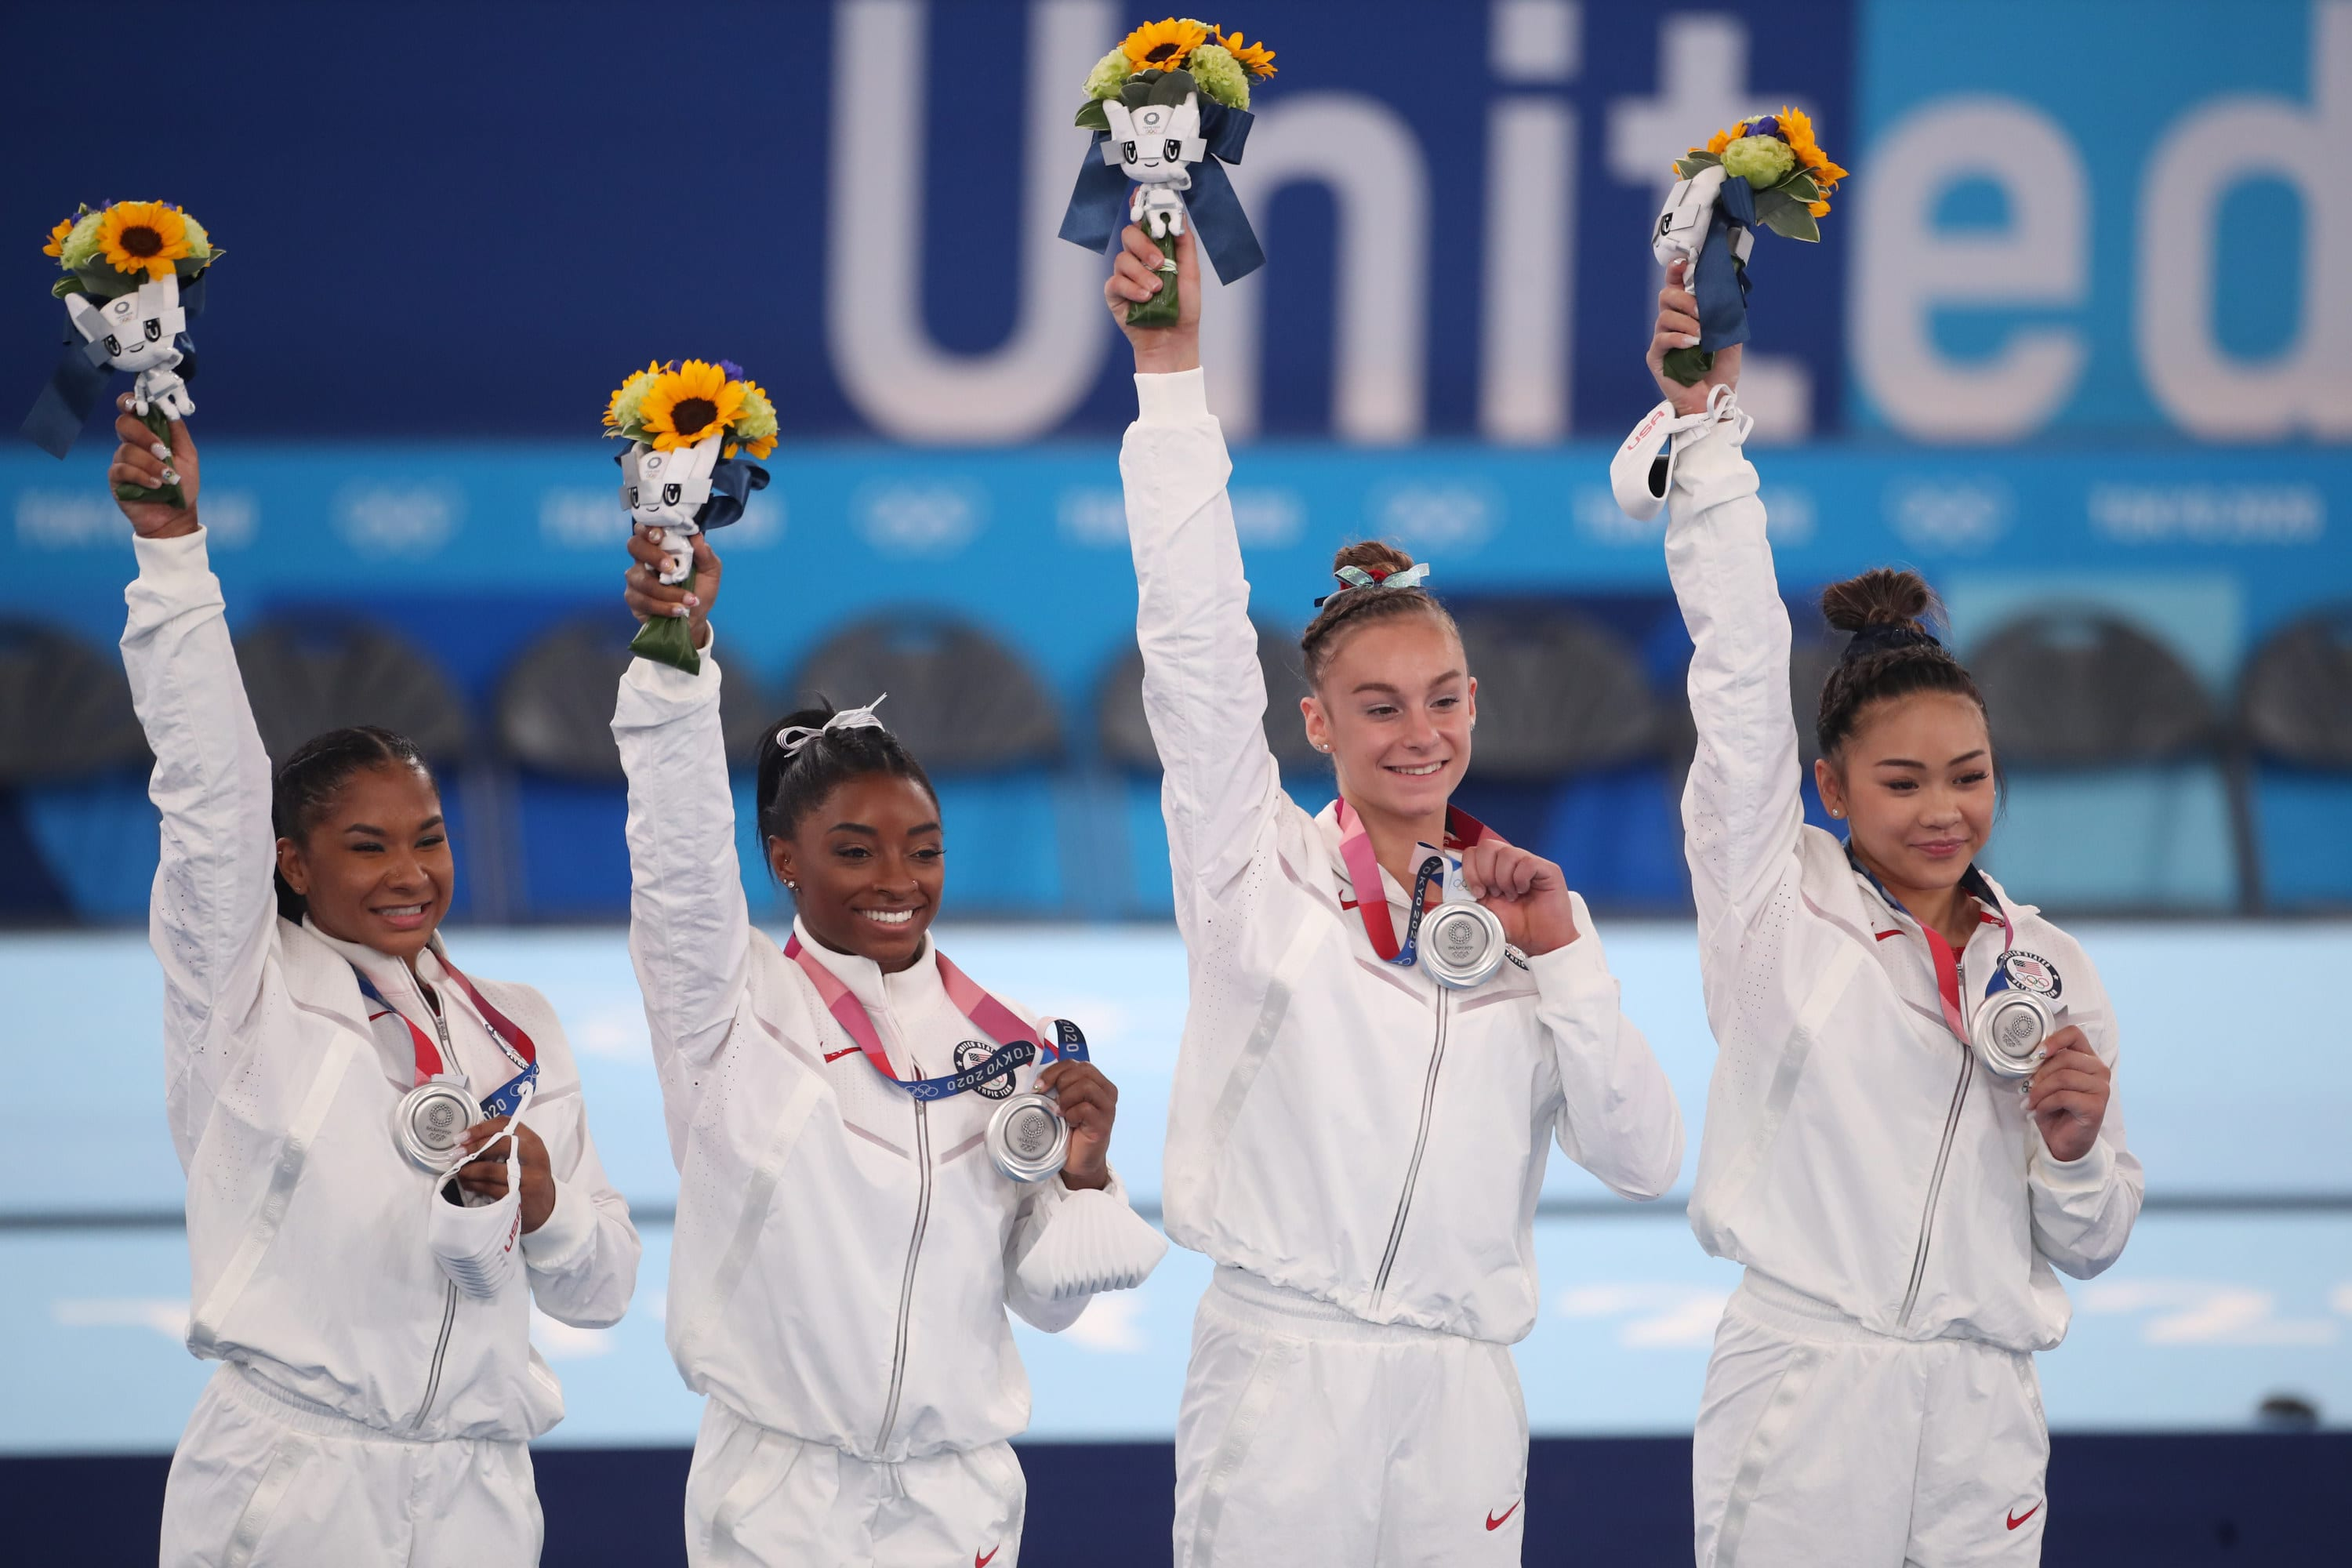 The U.S. Women's Gymnastics team saluting the crowd and posing with their medals